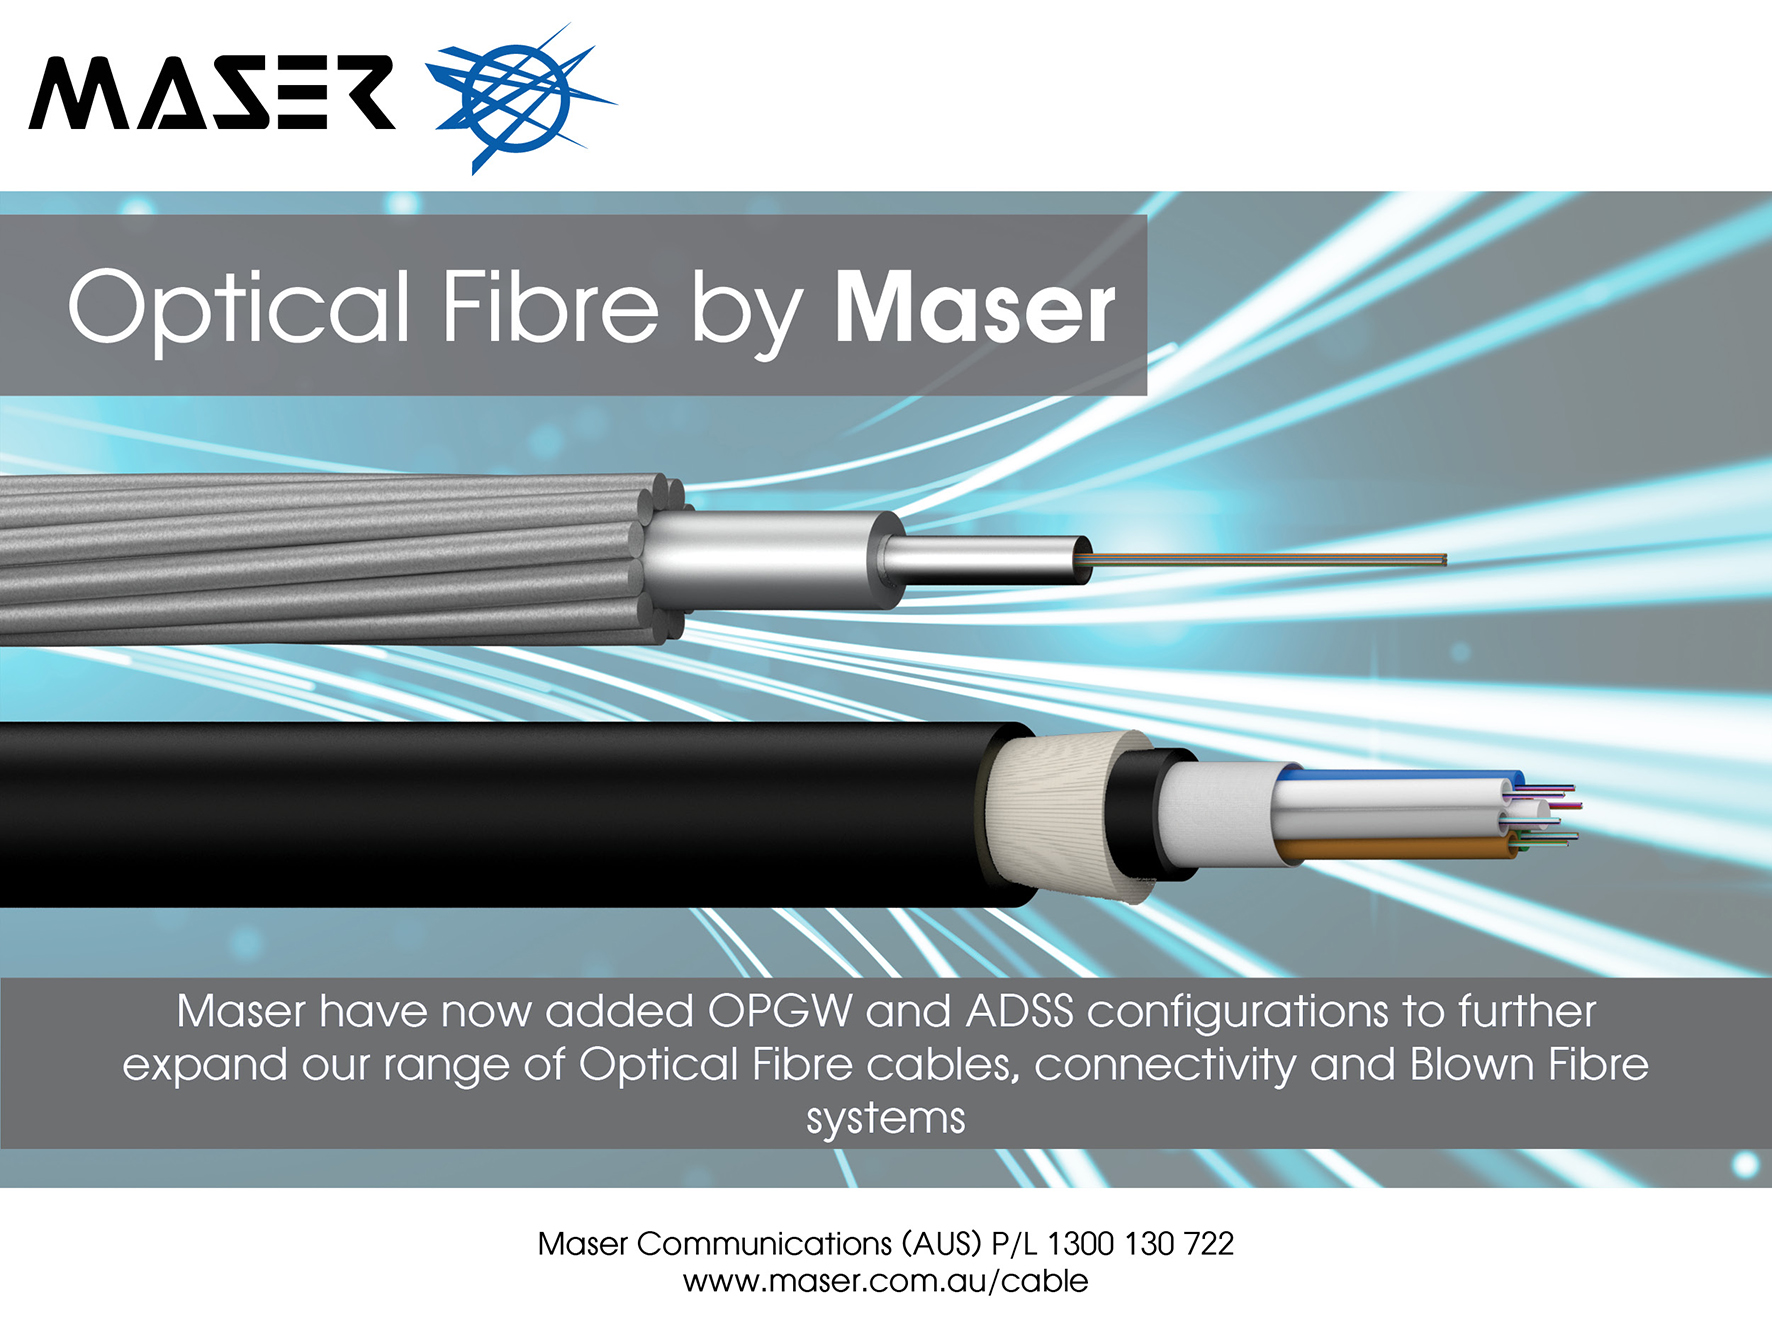 OPGW and ADSS Fibre now available – Award wining products supplied by Maser